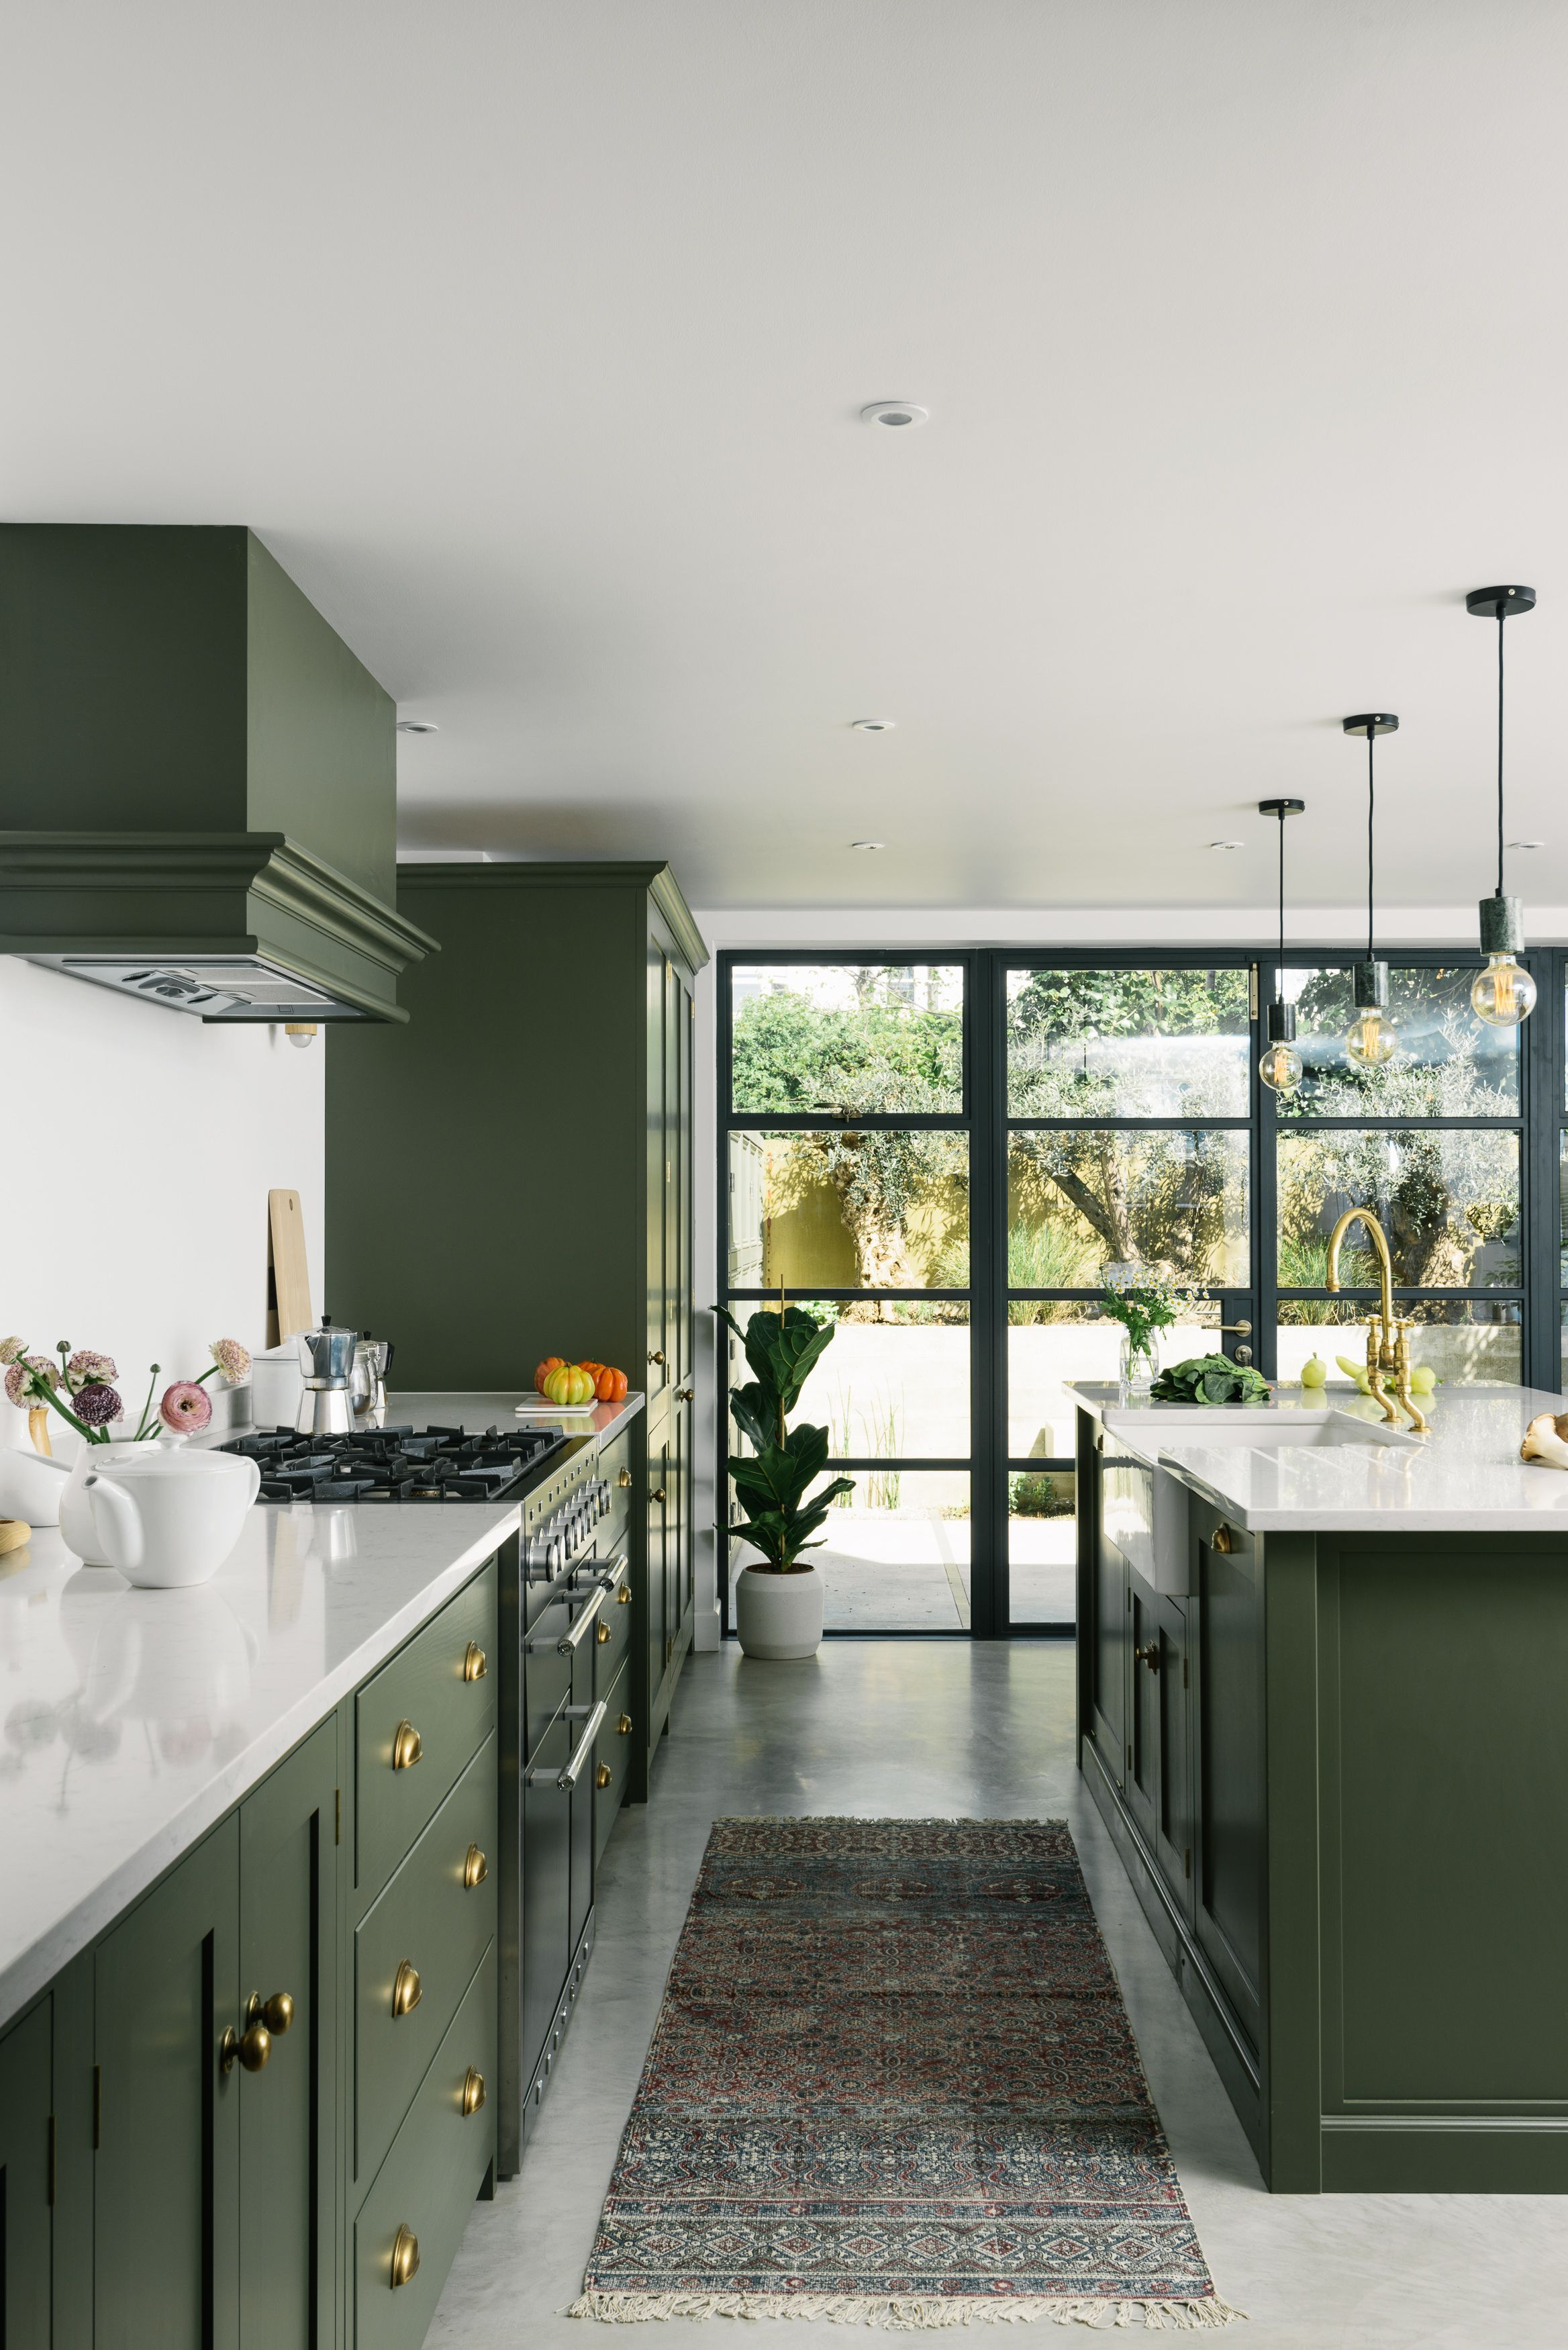 The Cooker Run Is Long And Has Plenty Of Drawers And Cupboards Perfect For Storing Kitchenware Green Kitchen Cabinets Kitchen Design Green Kitchen Inspiration